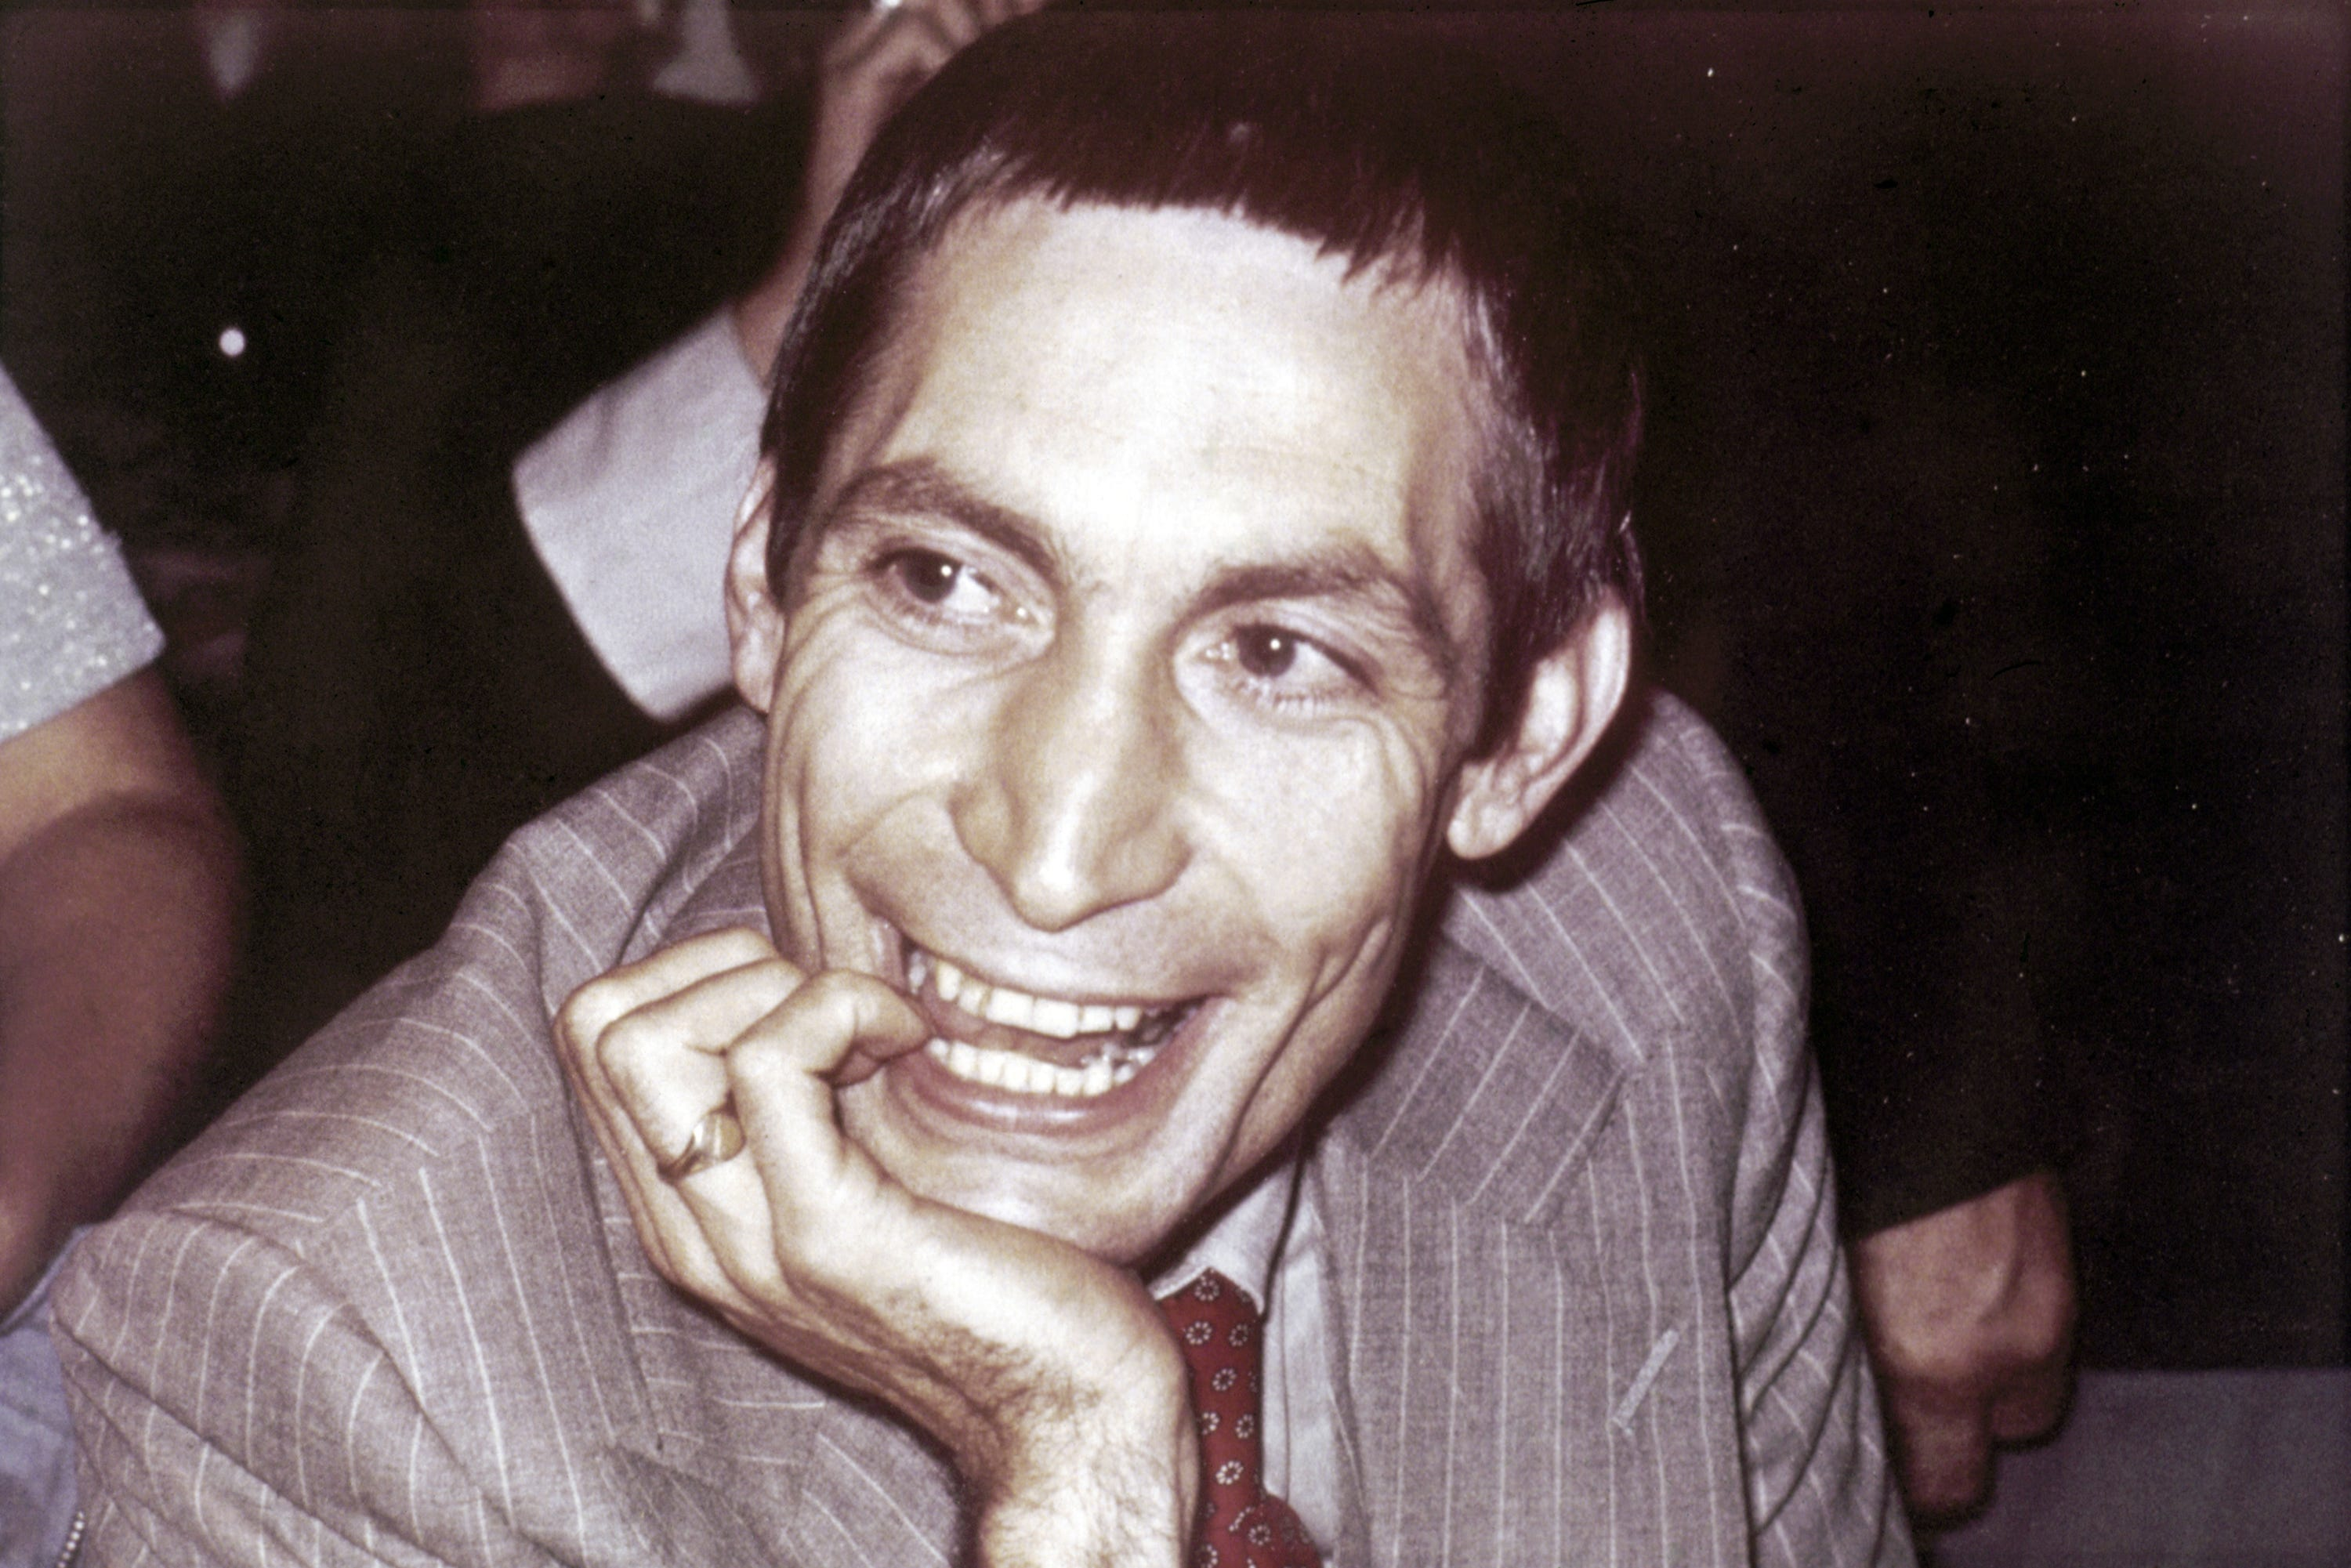 Charlie Watts  best quotes on Mick Jagger, Keith Richards and the Rolling Stones:  I don t actually like touring